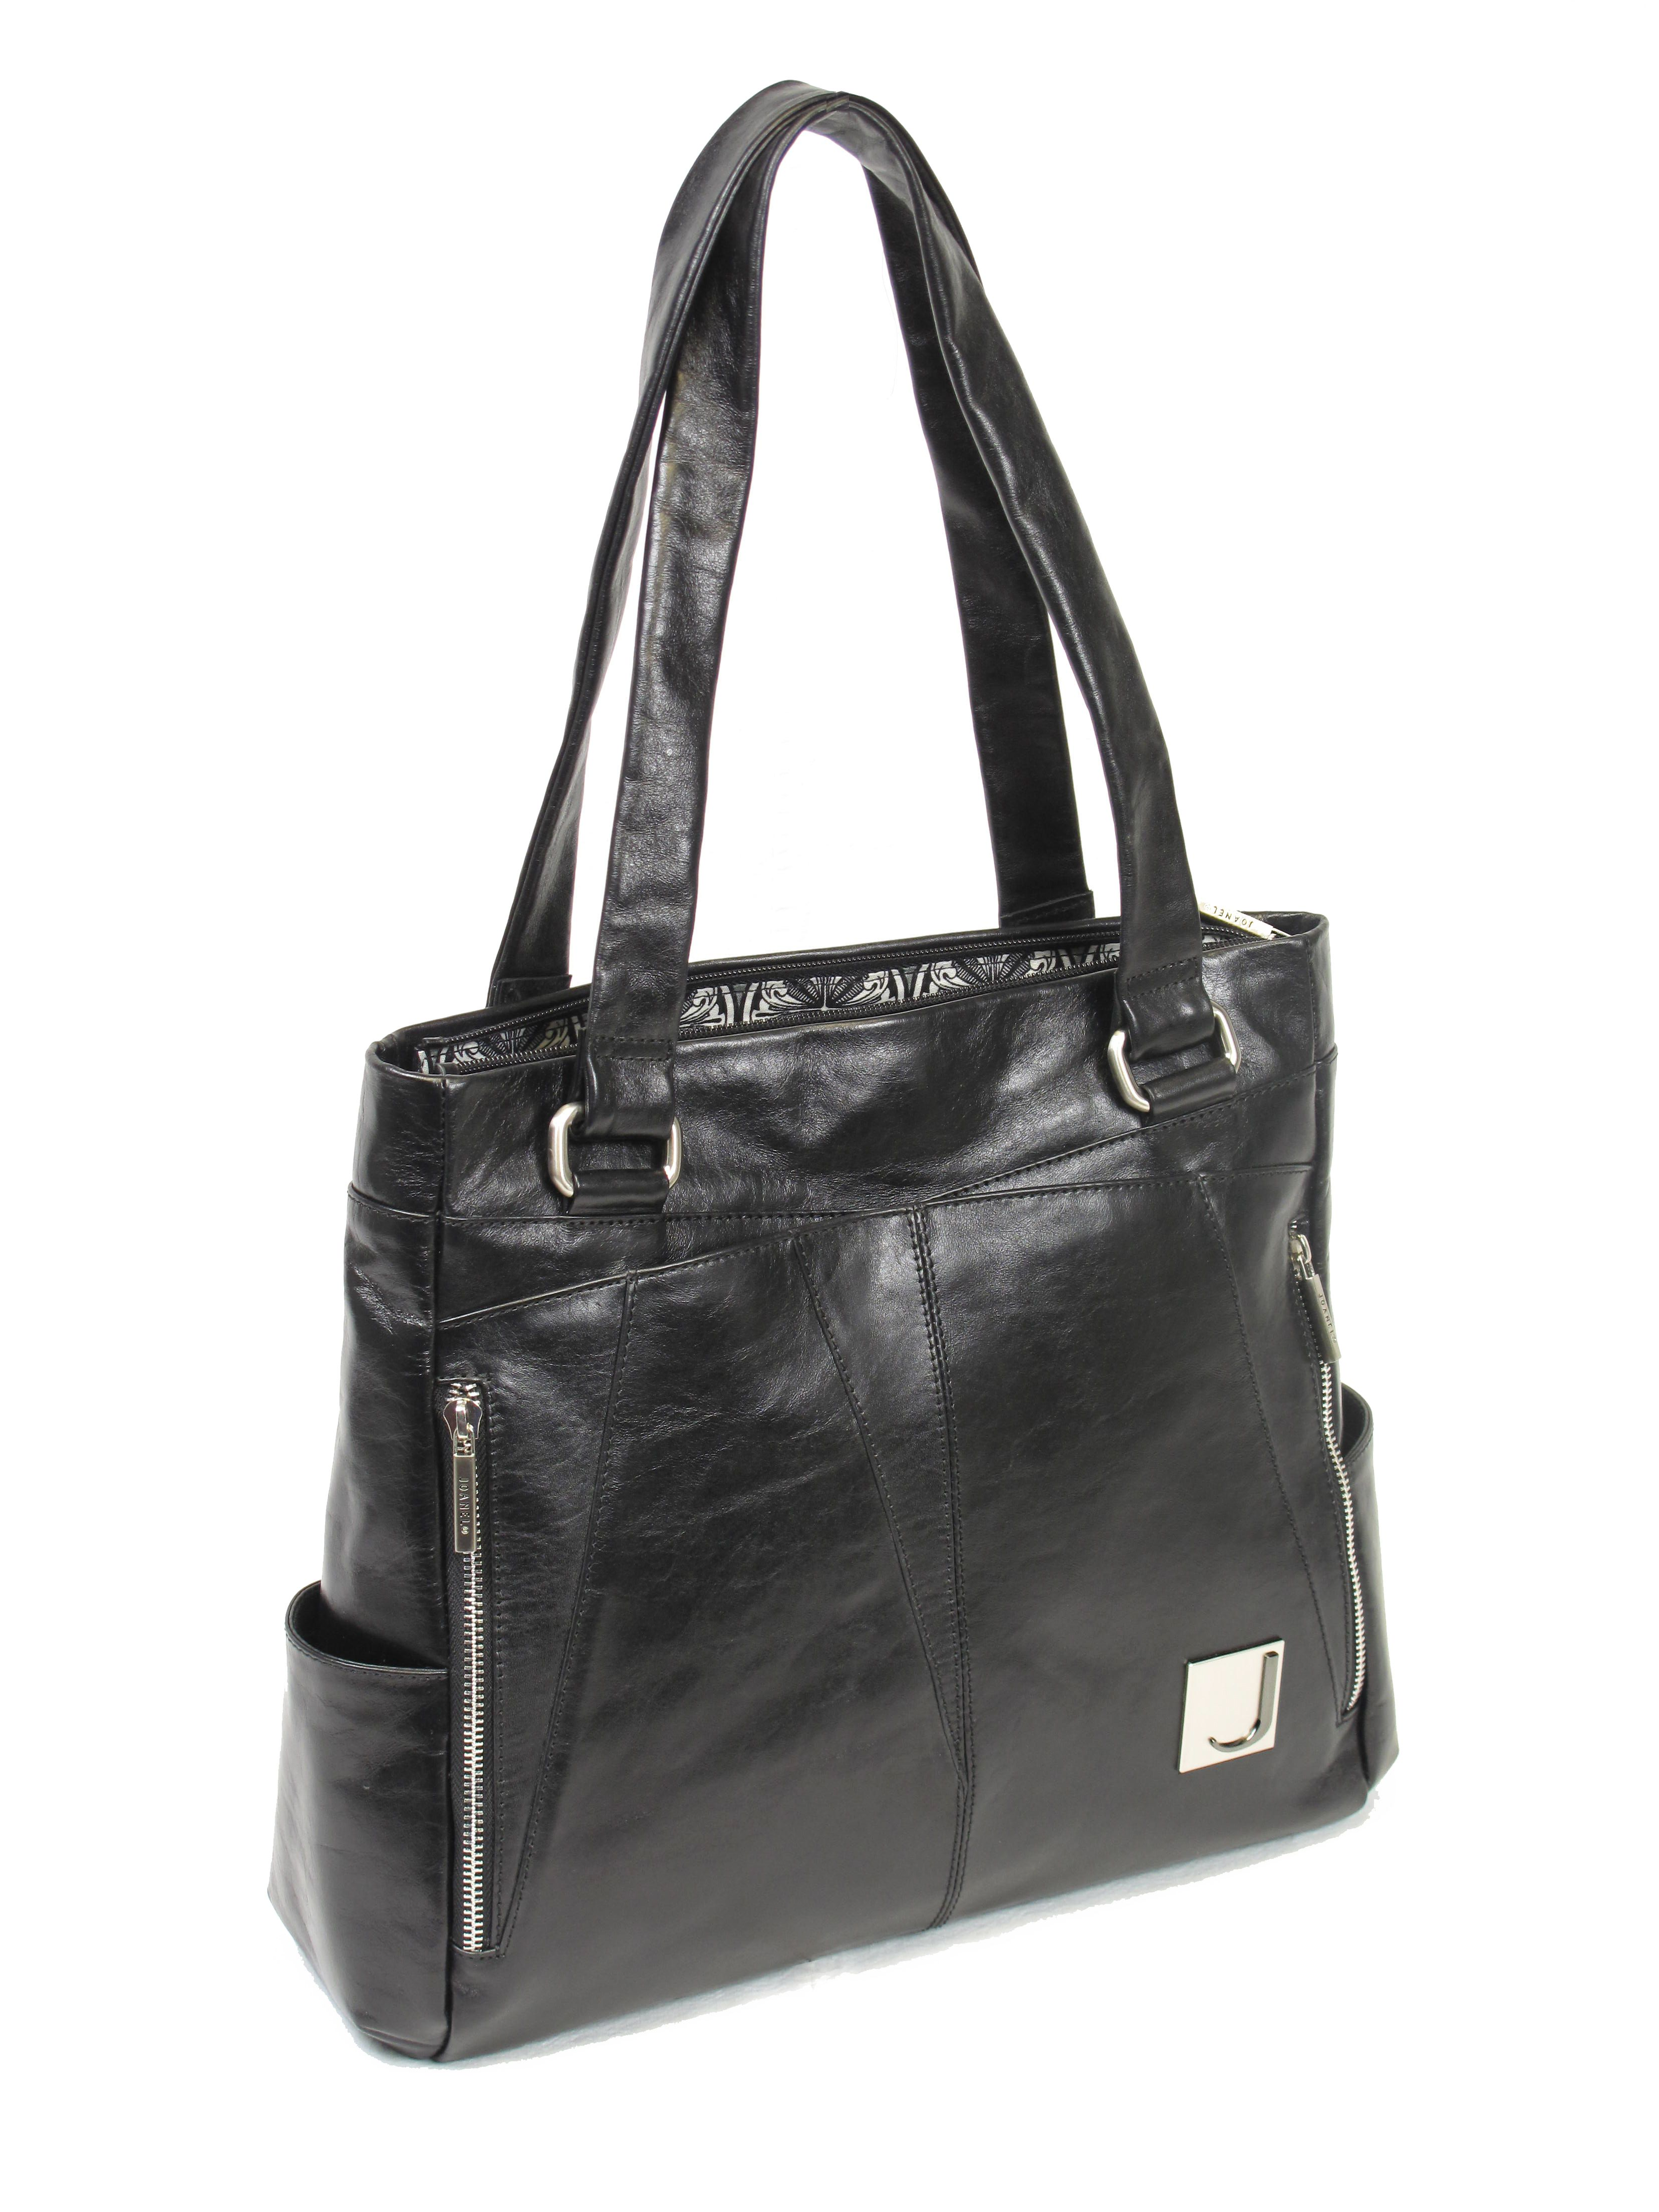 38de0b77e5cb Scoop Coming Out This Fall Is The New Joanel Lux Bag It Features